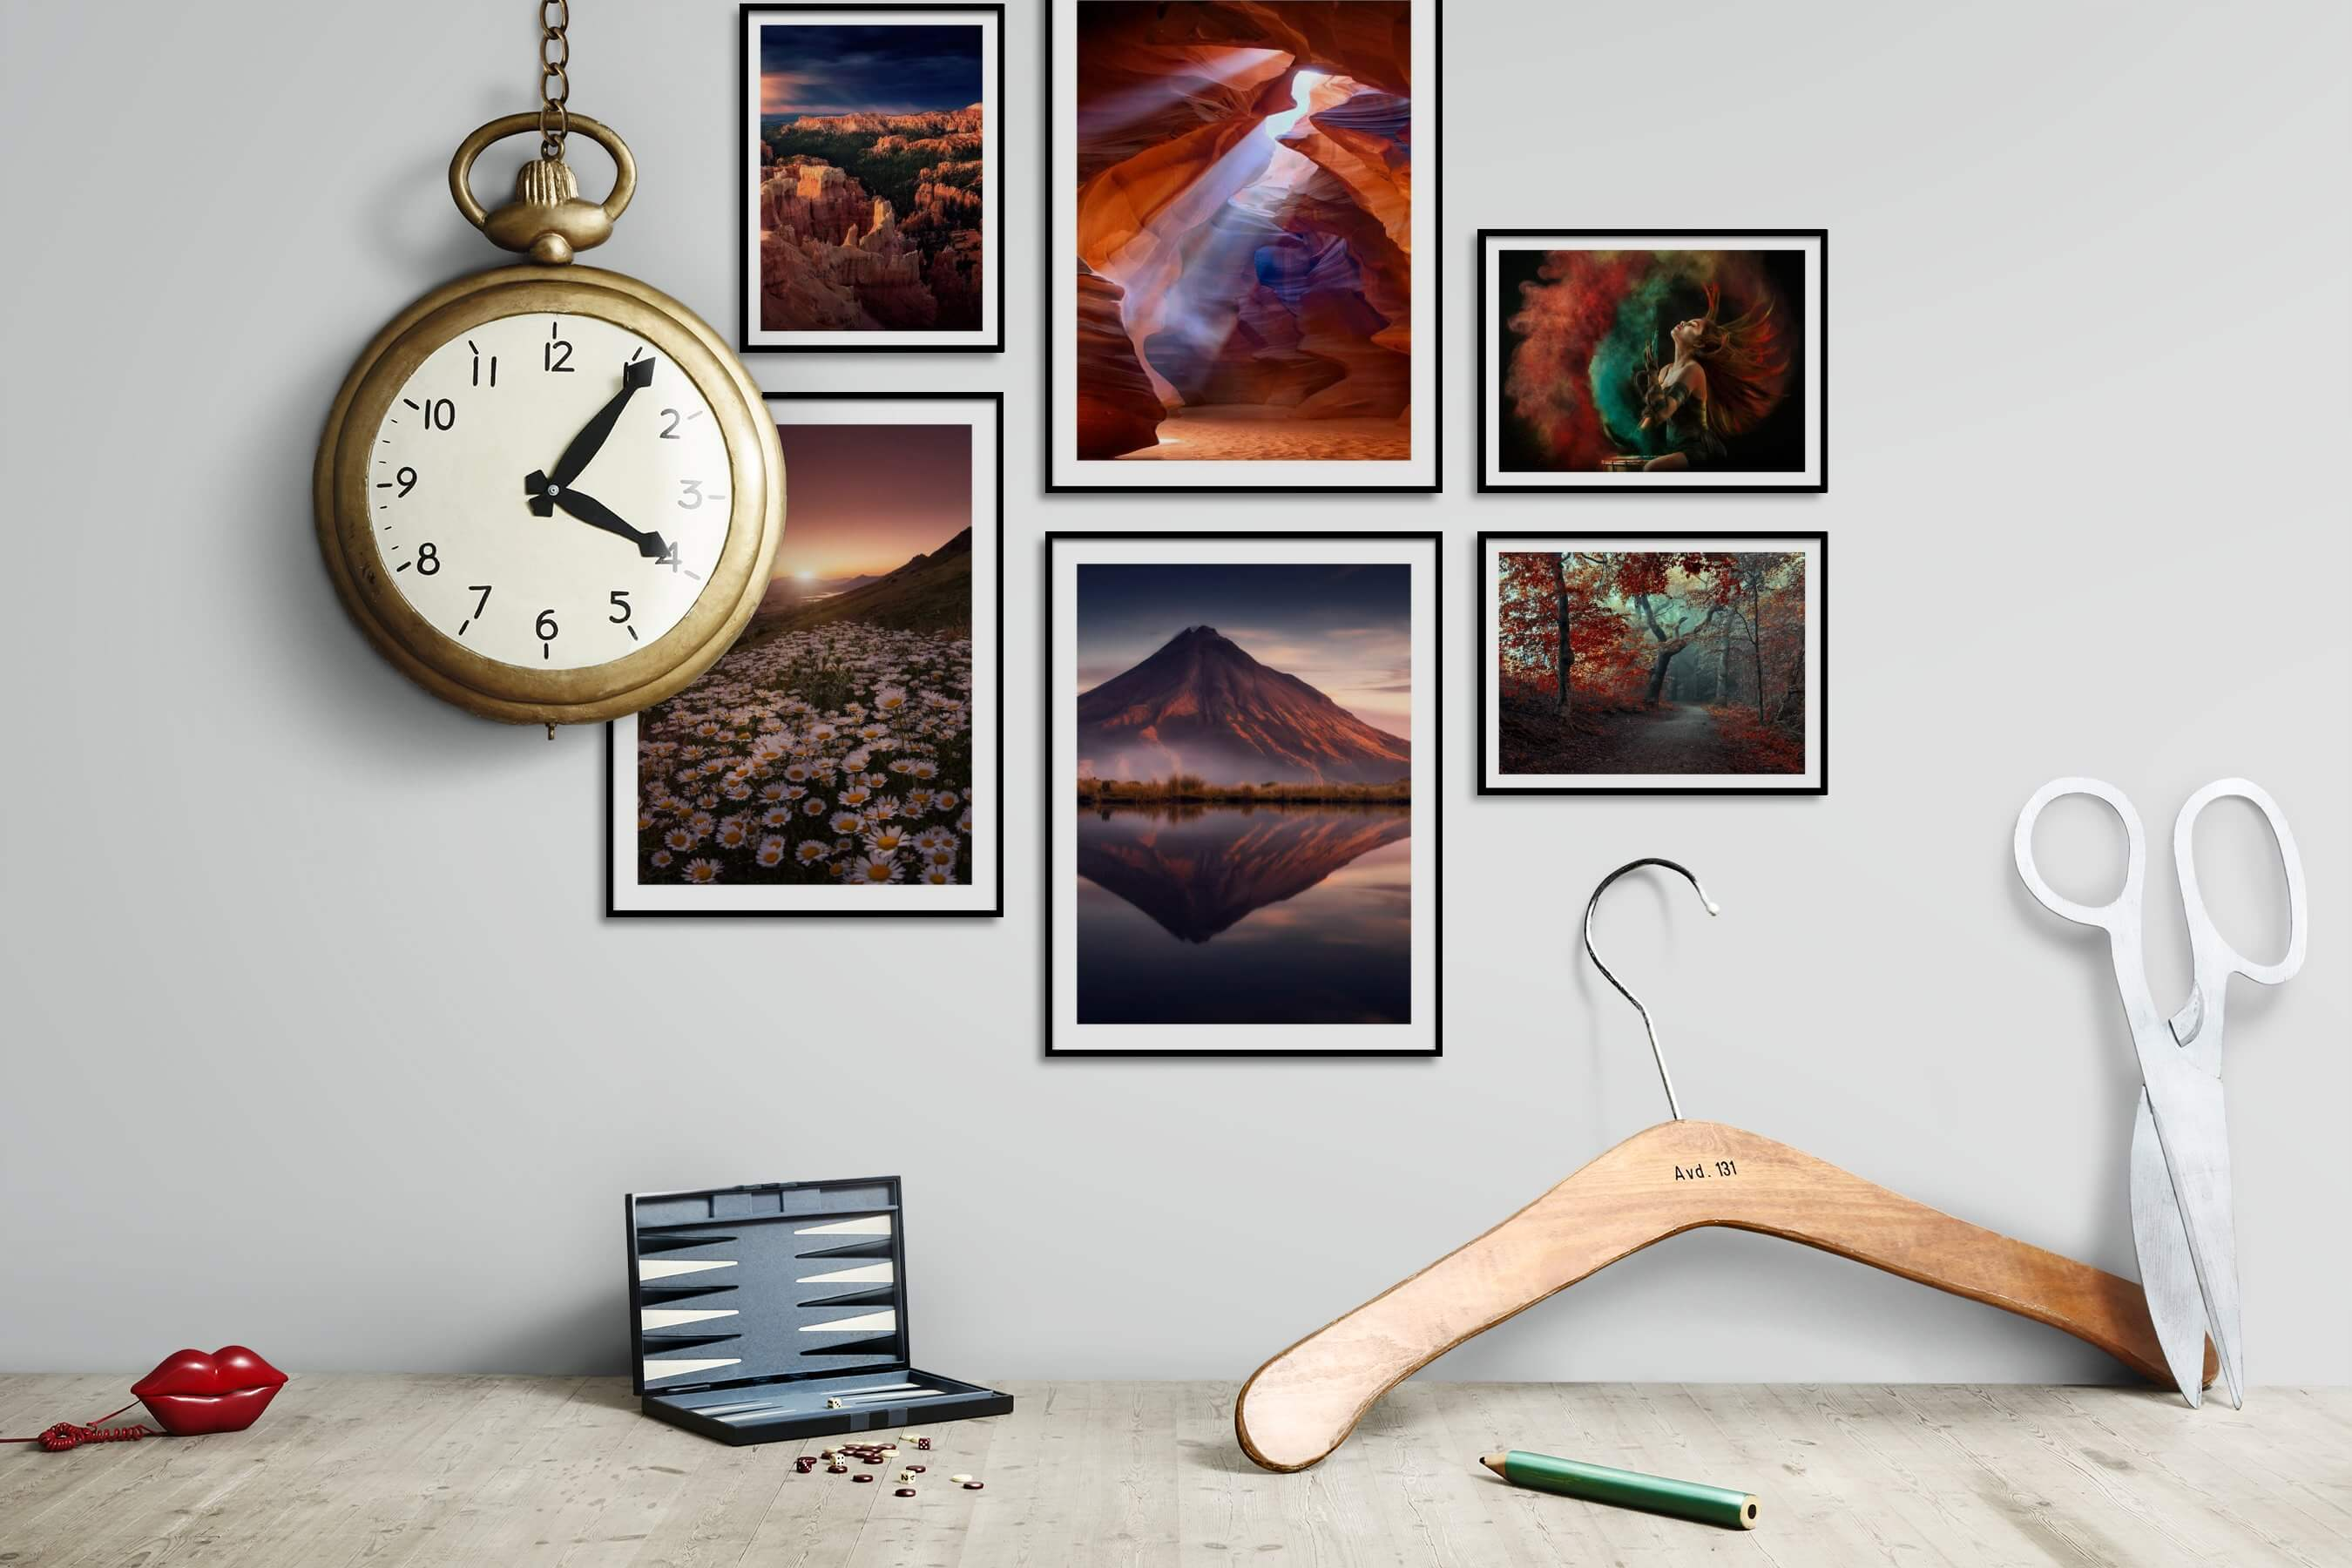 Gallery wall idea with six framed pictures arranged on a wall depicting Nature, Americana, Flowers & Plants, Mindfulness, and Fashion & Beauty